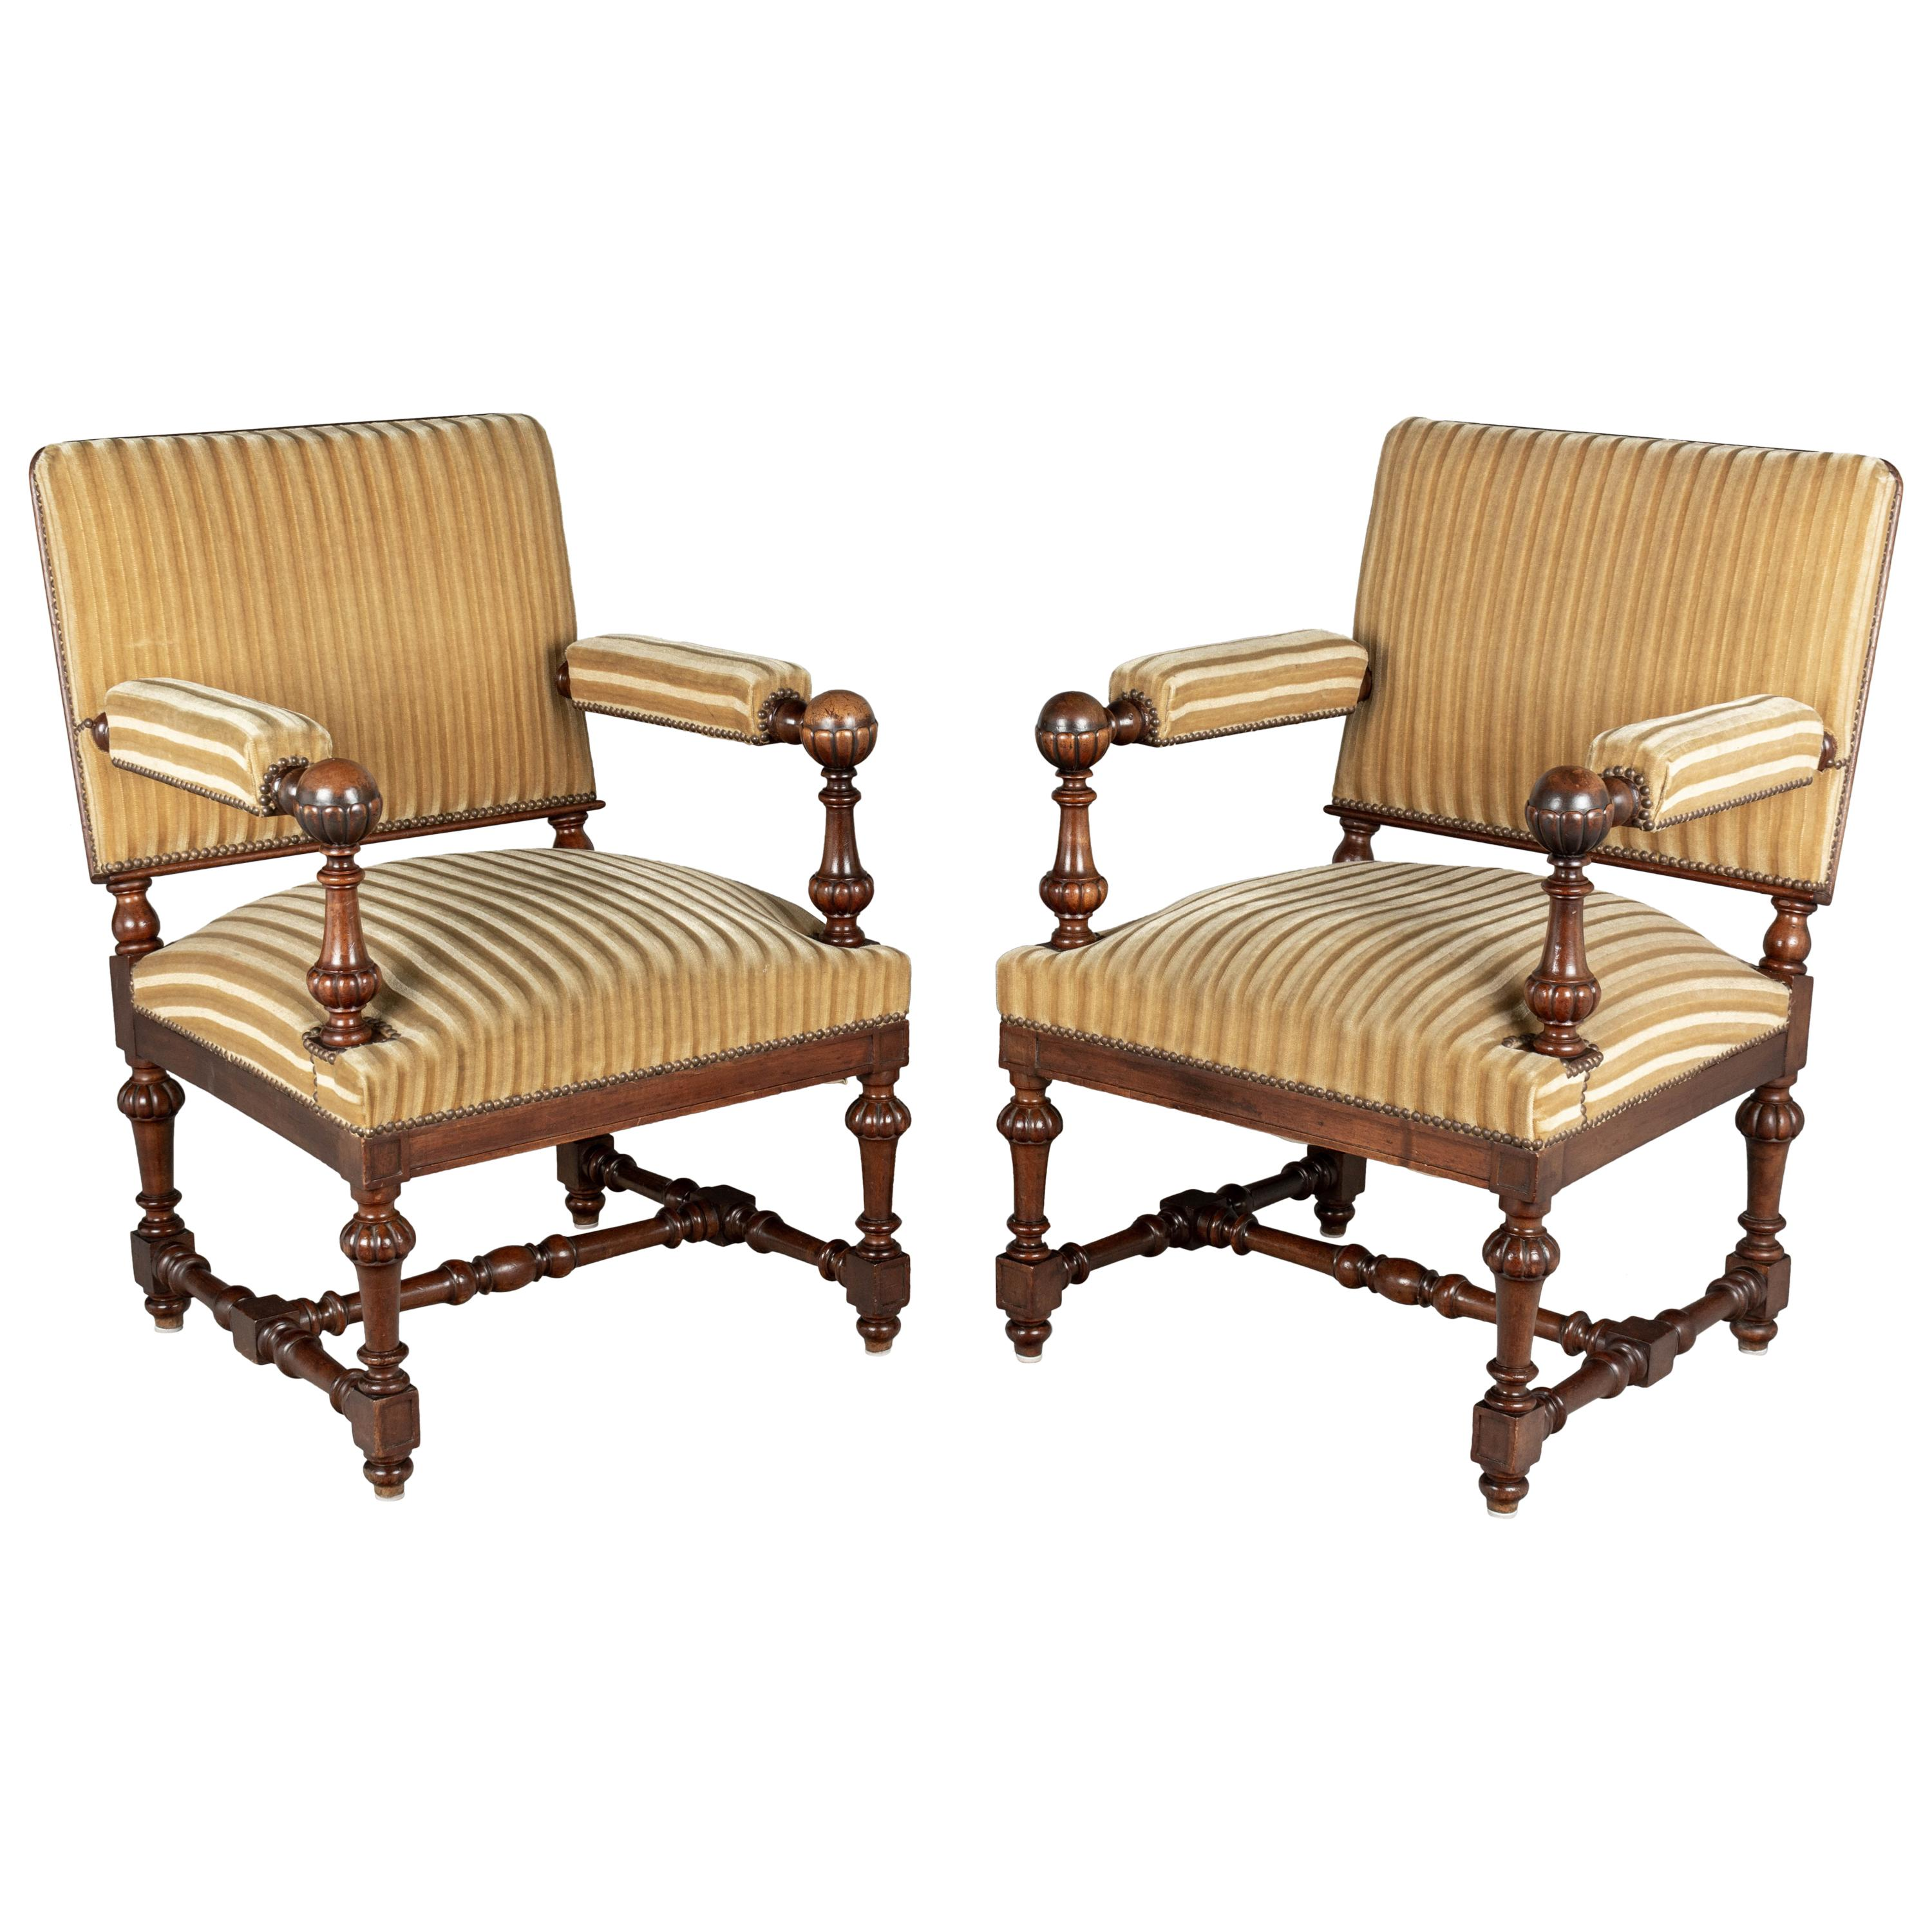 Pair of Louis XIV Style French Walnut Fauteuils